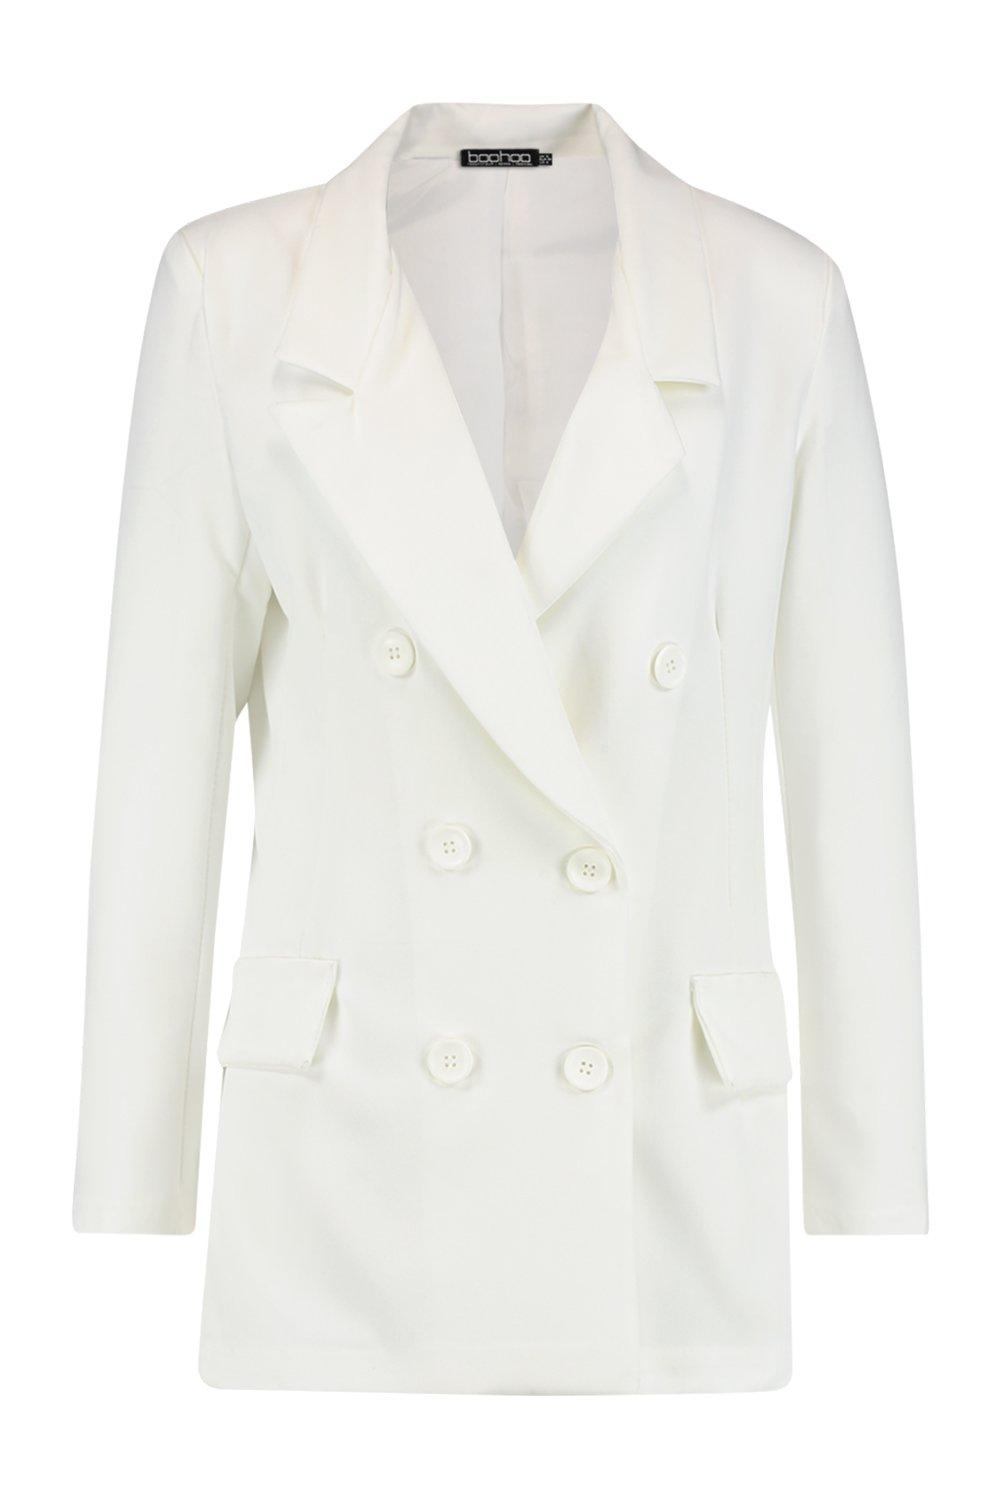 Contrast Blazer white with Breasted Button Double qAT8wT